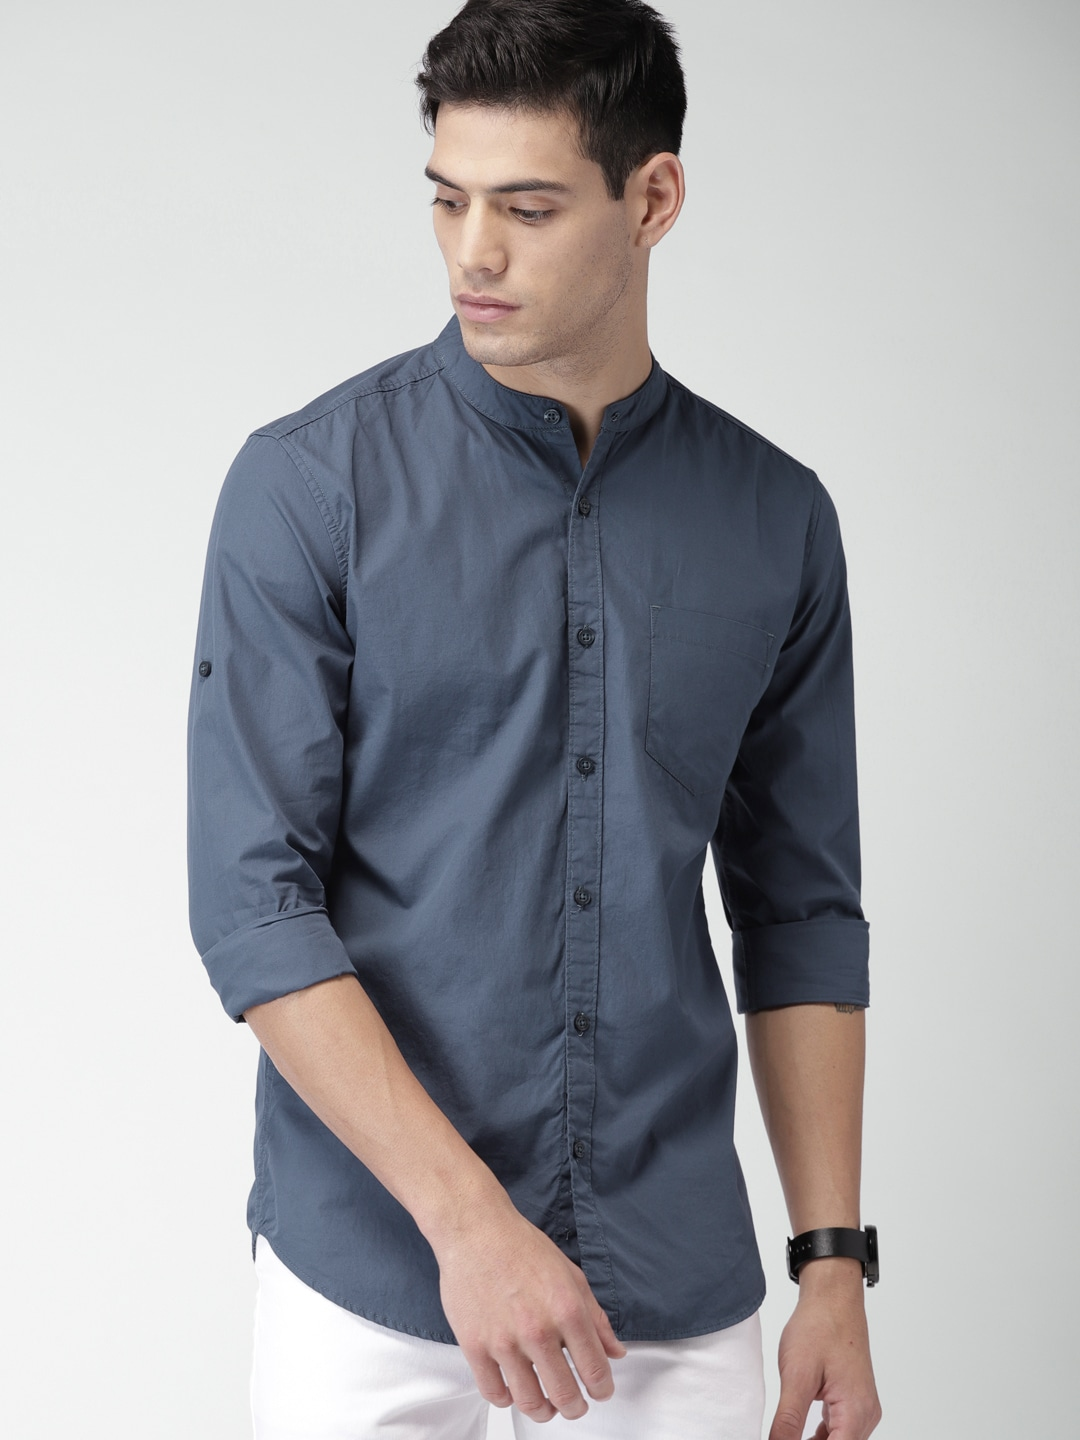 3d635a3ac01a Casual Shirts for Men - Buy Men Casual Shirt Online in India